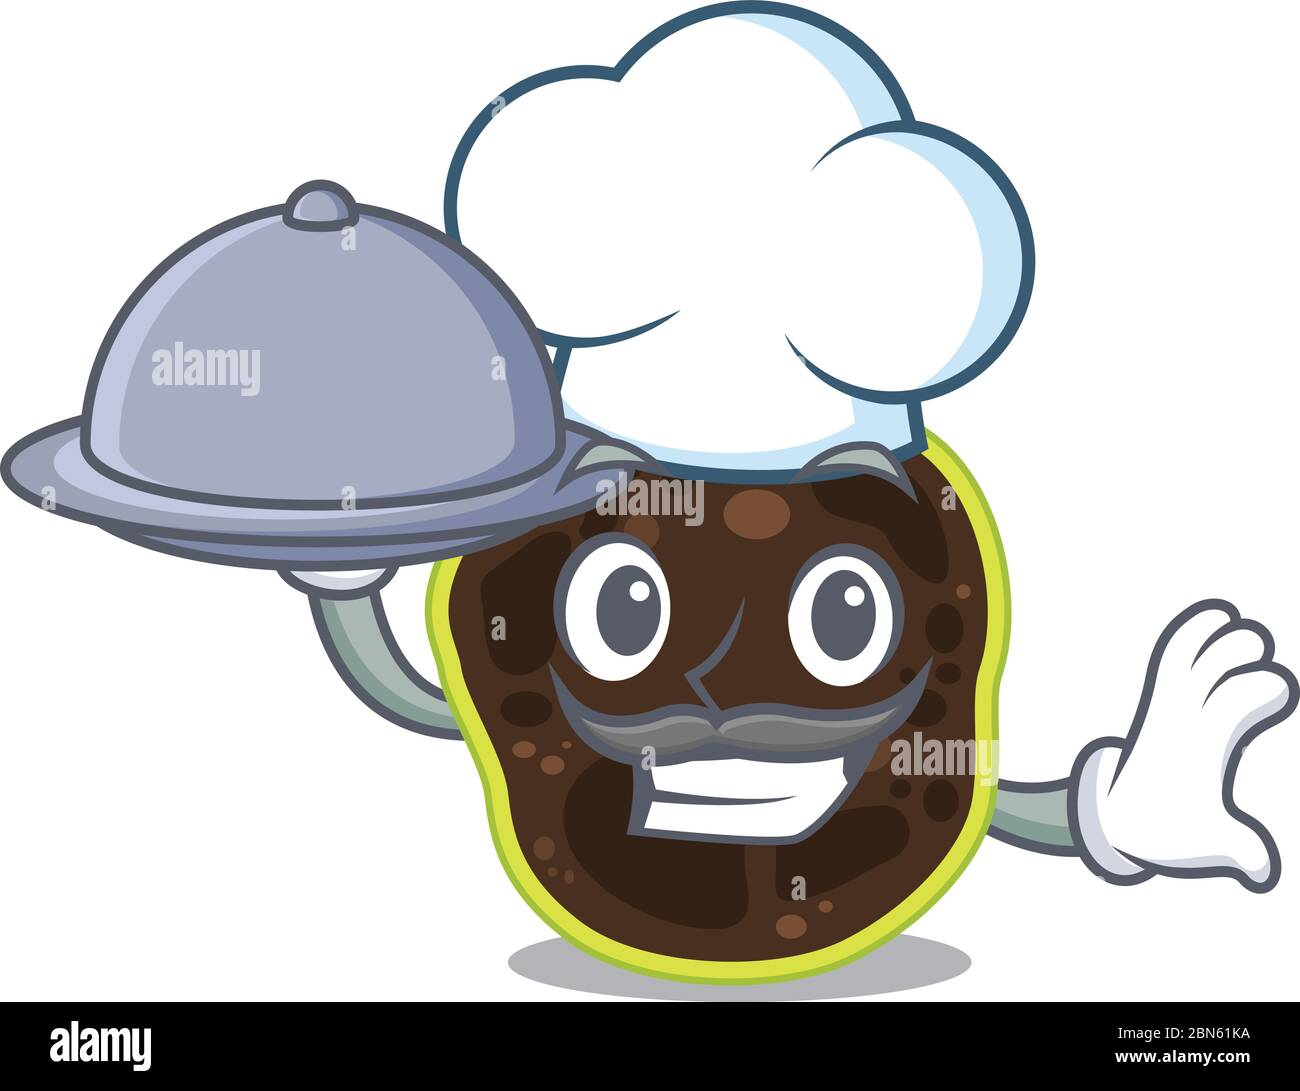 mascot design of firmicutes chef serving food on tray Stock Vector